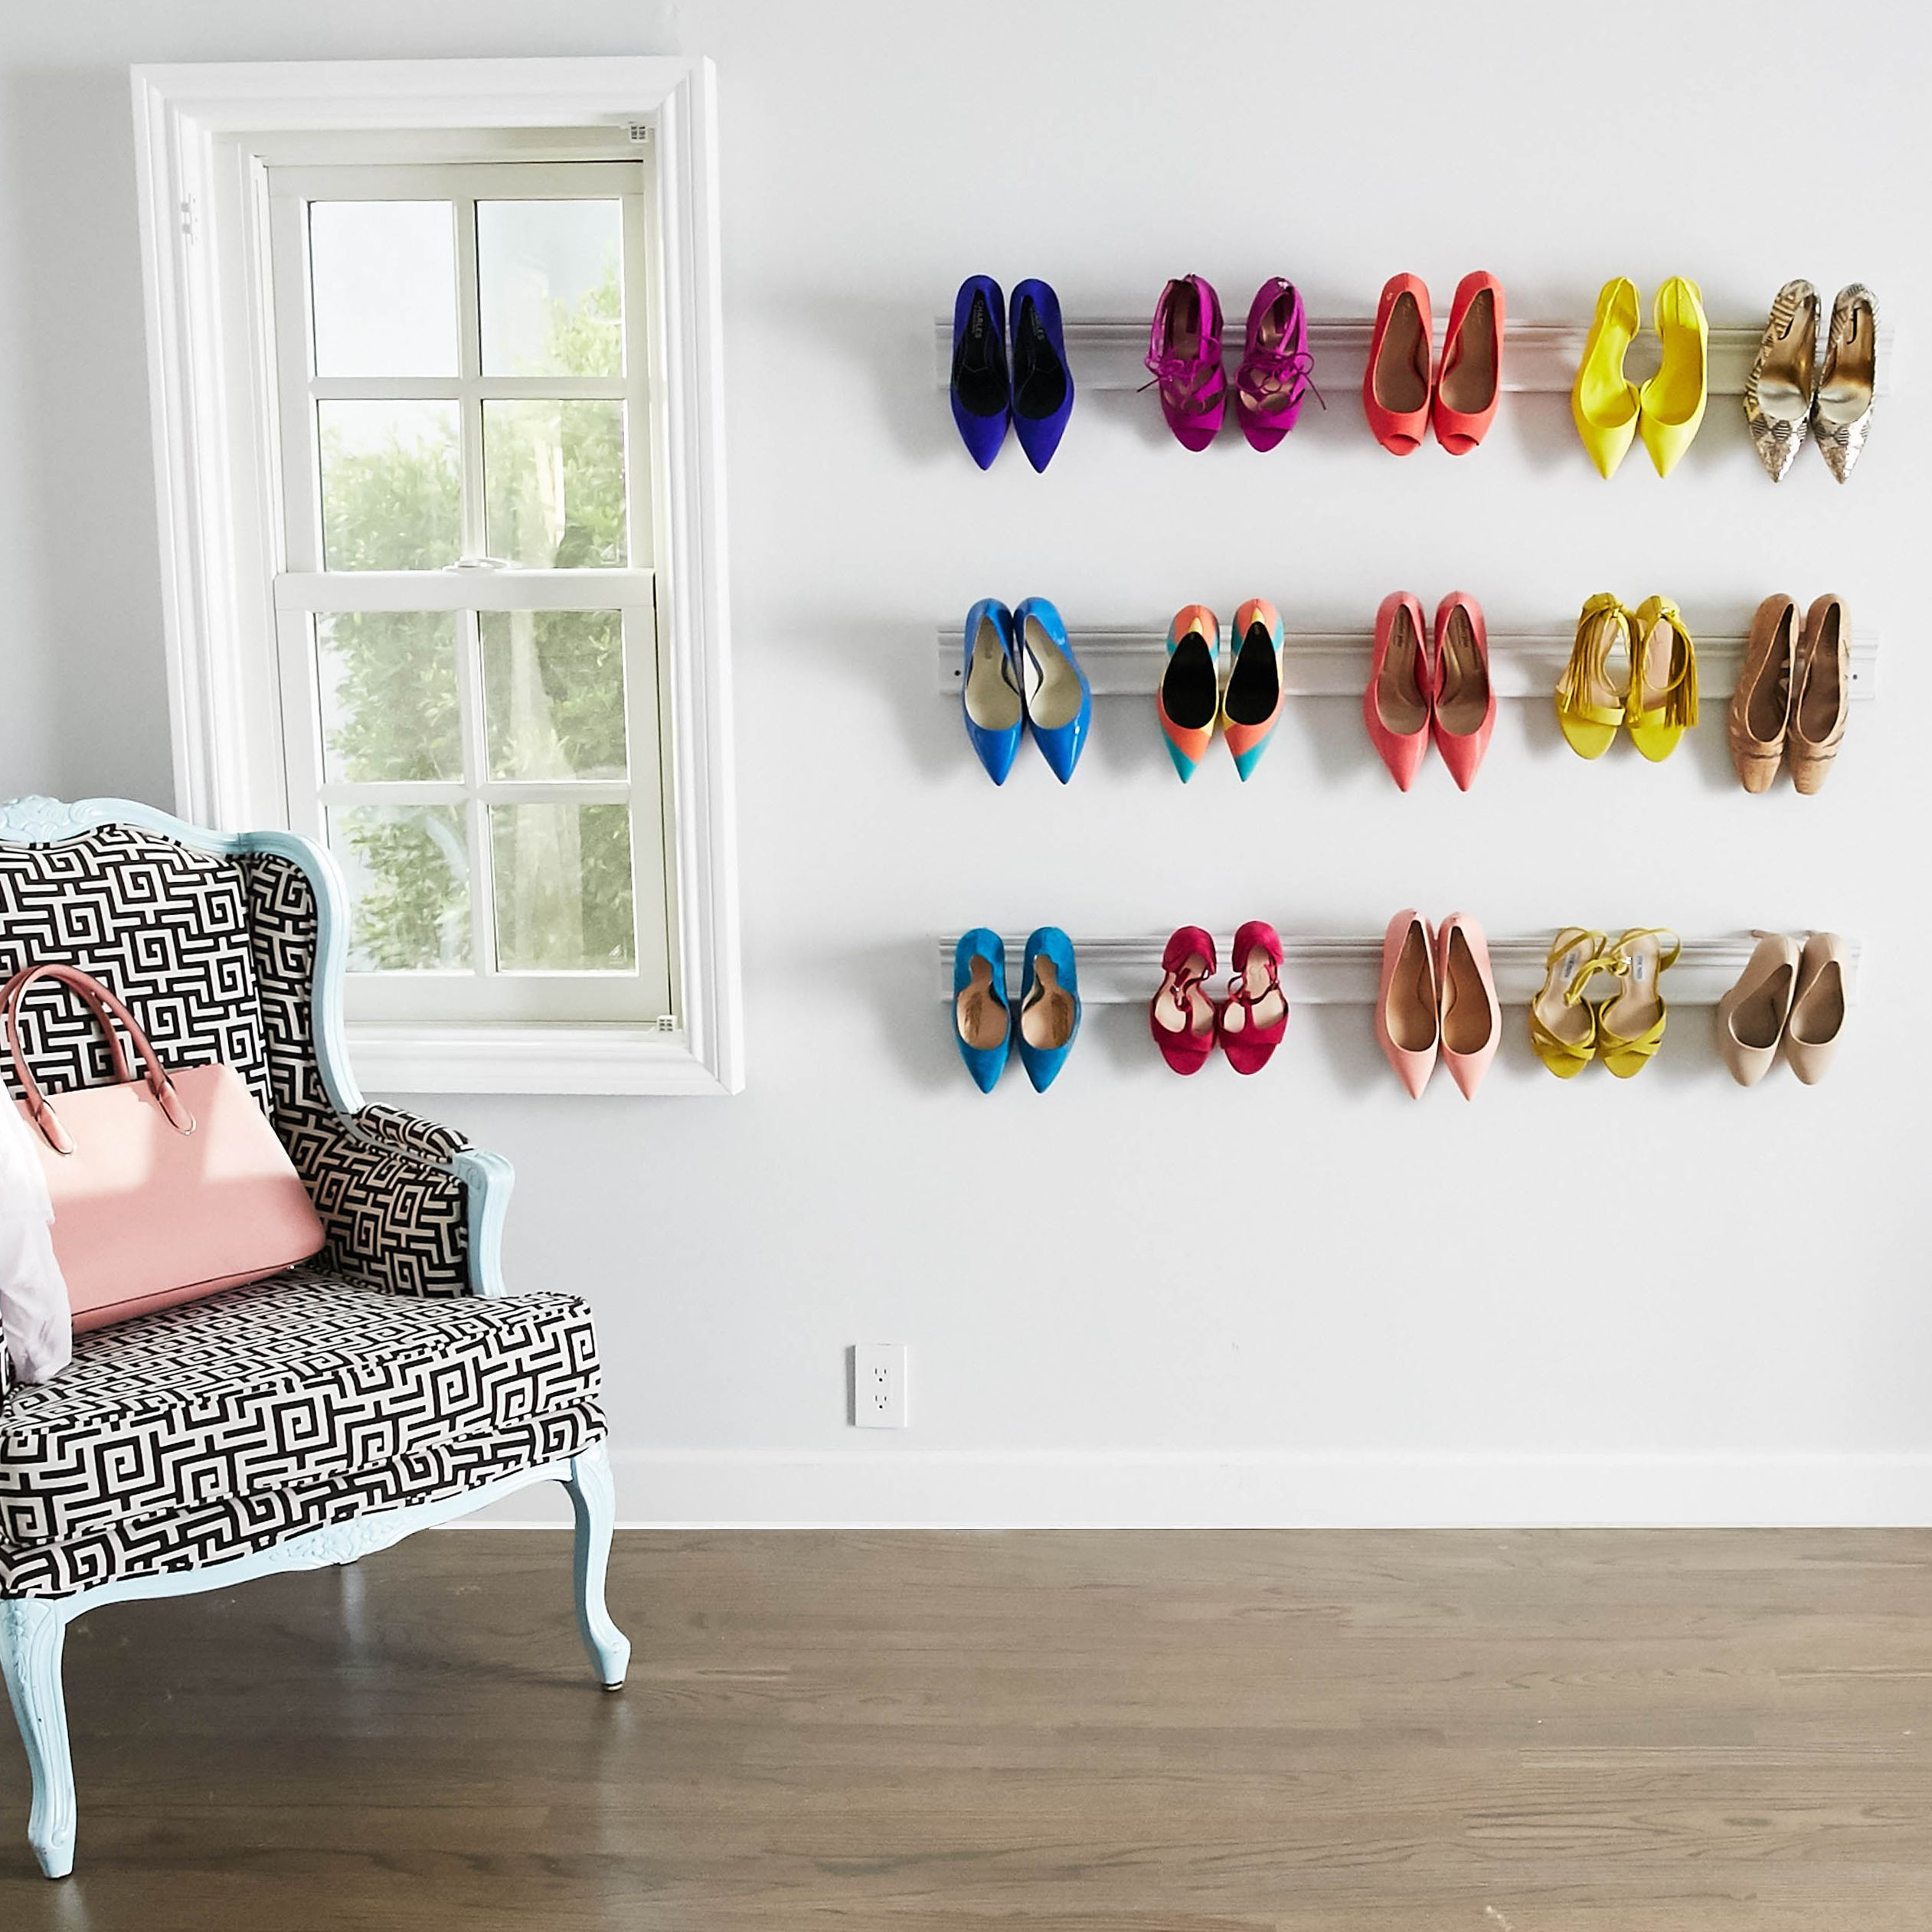 DIY Wall Mounted Shoe Rack